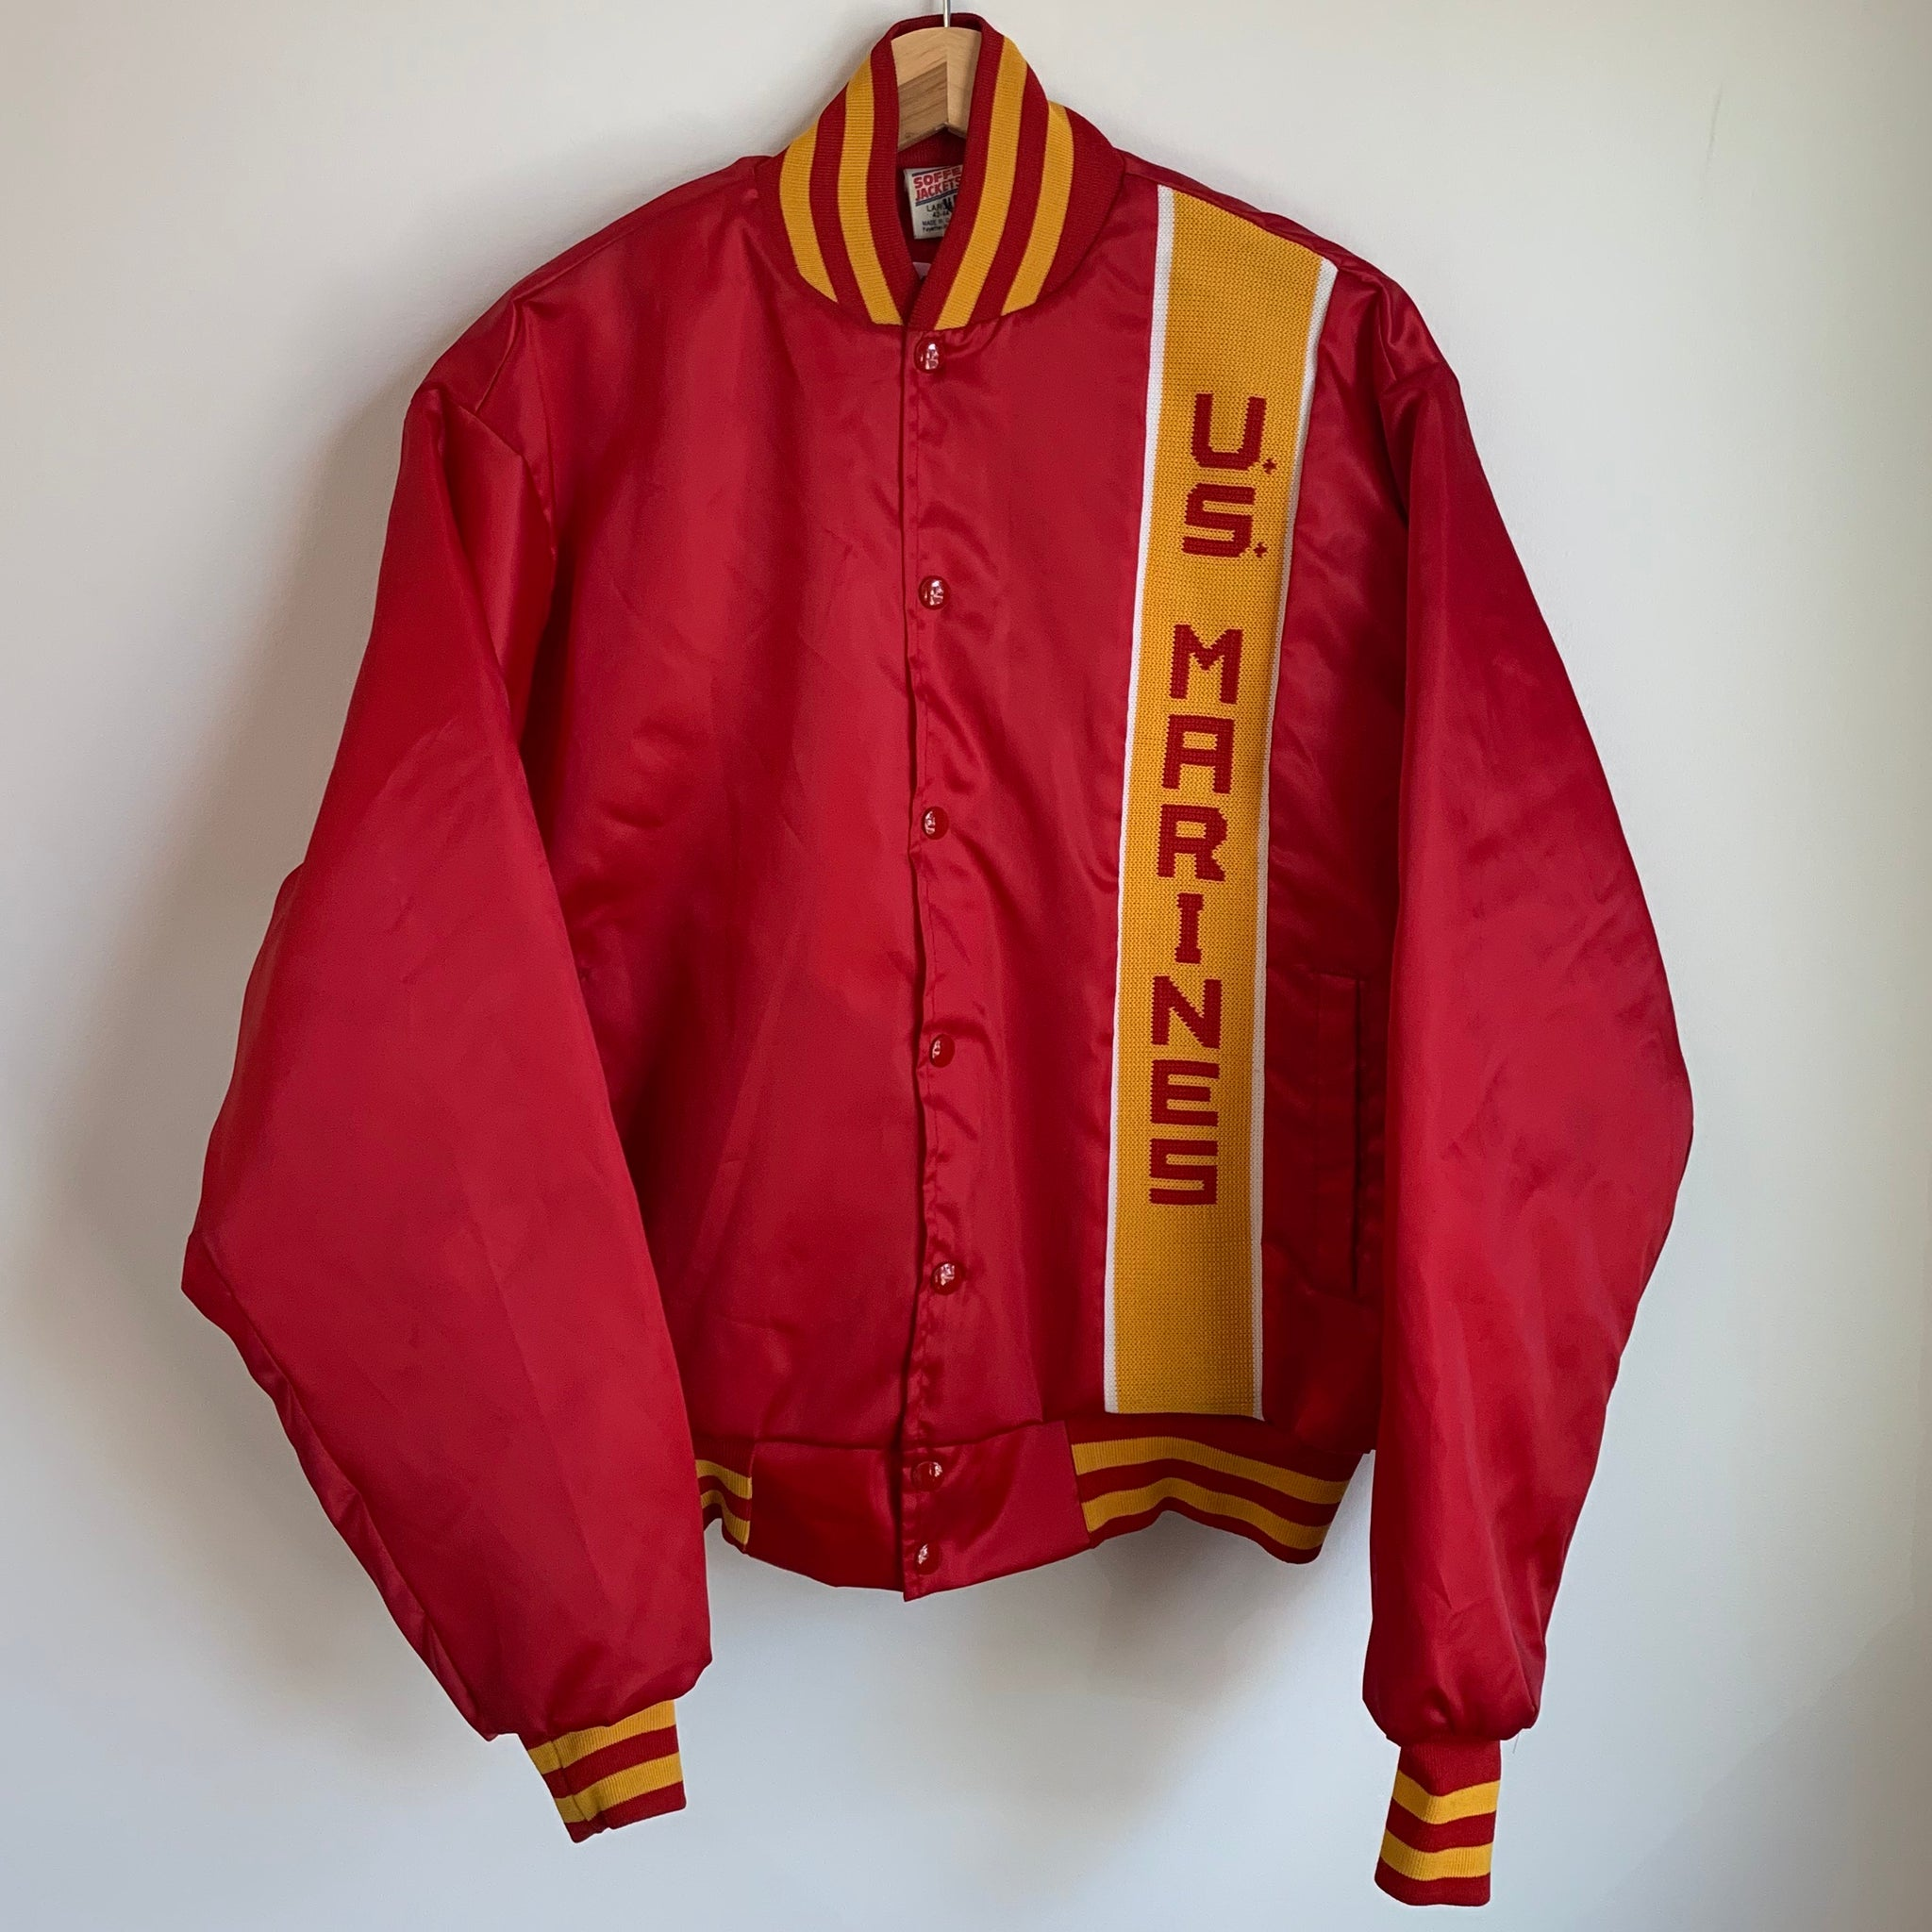 United States Marines Red Satin Jacket